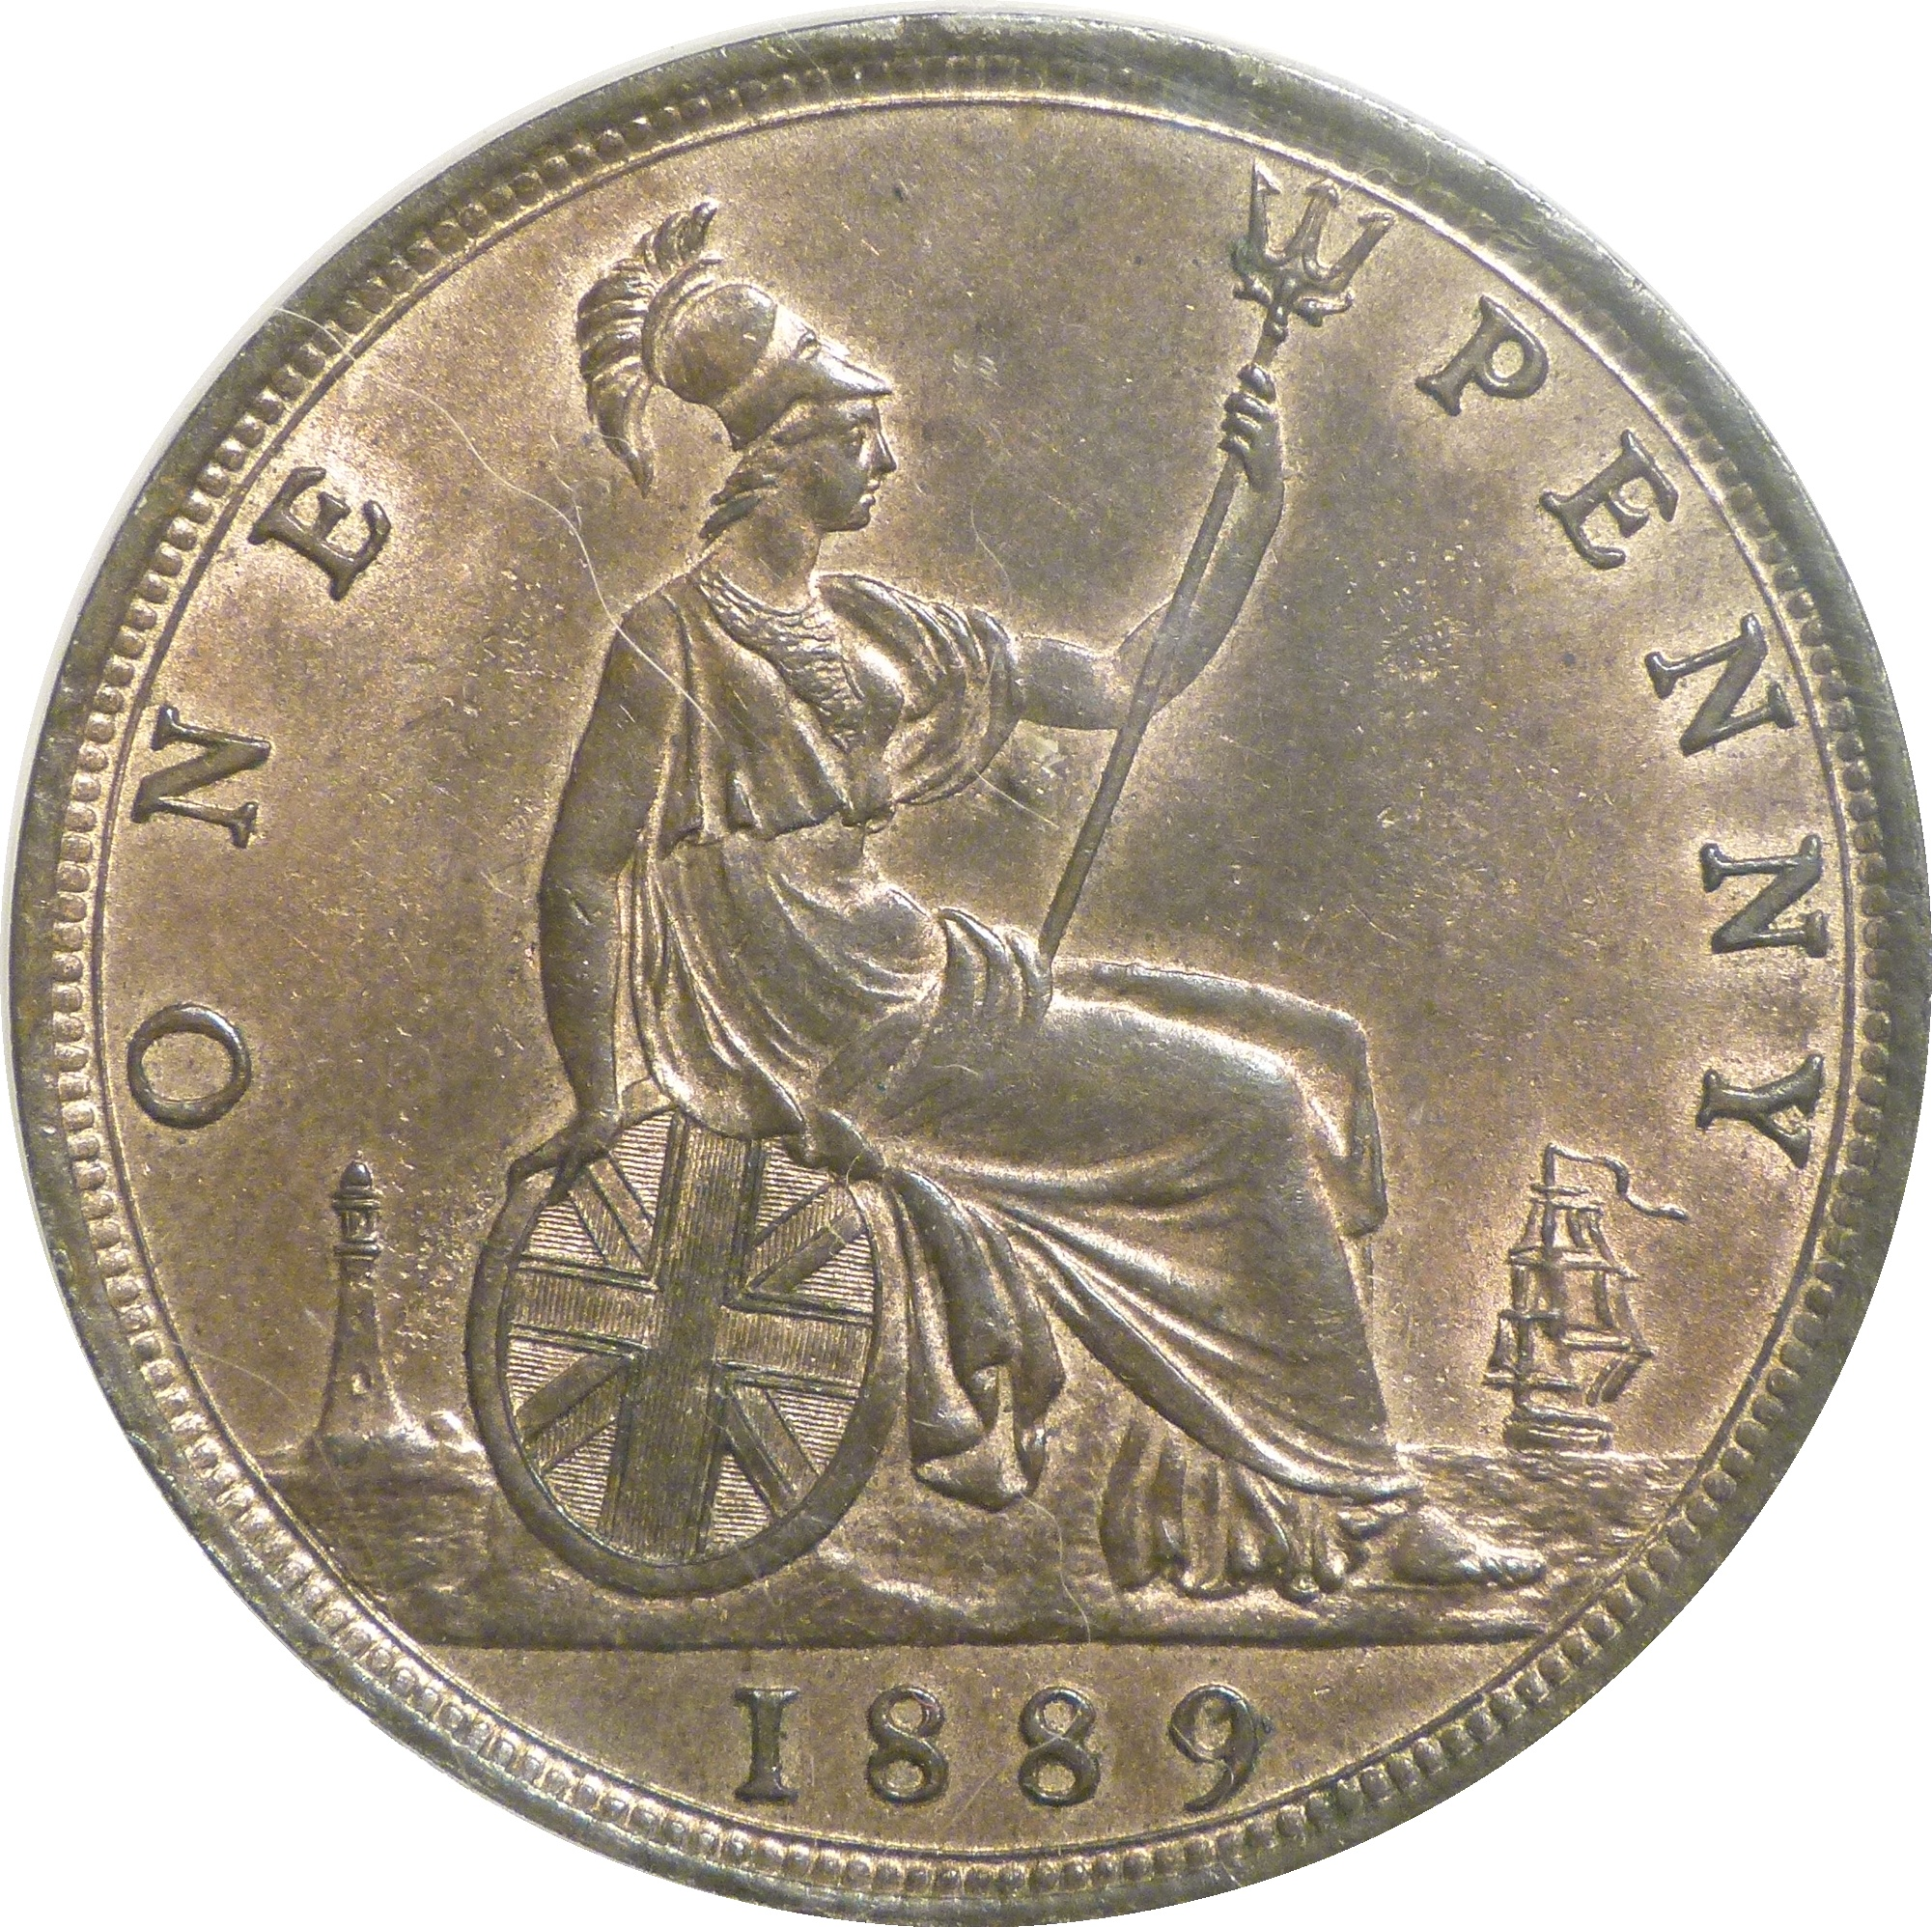 1889 Penny '14 Leaves', LCGS 70(MS 60-61), Freeman128, Victoria